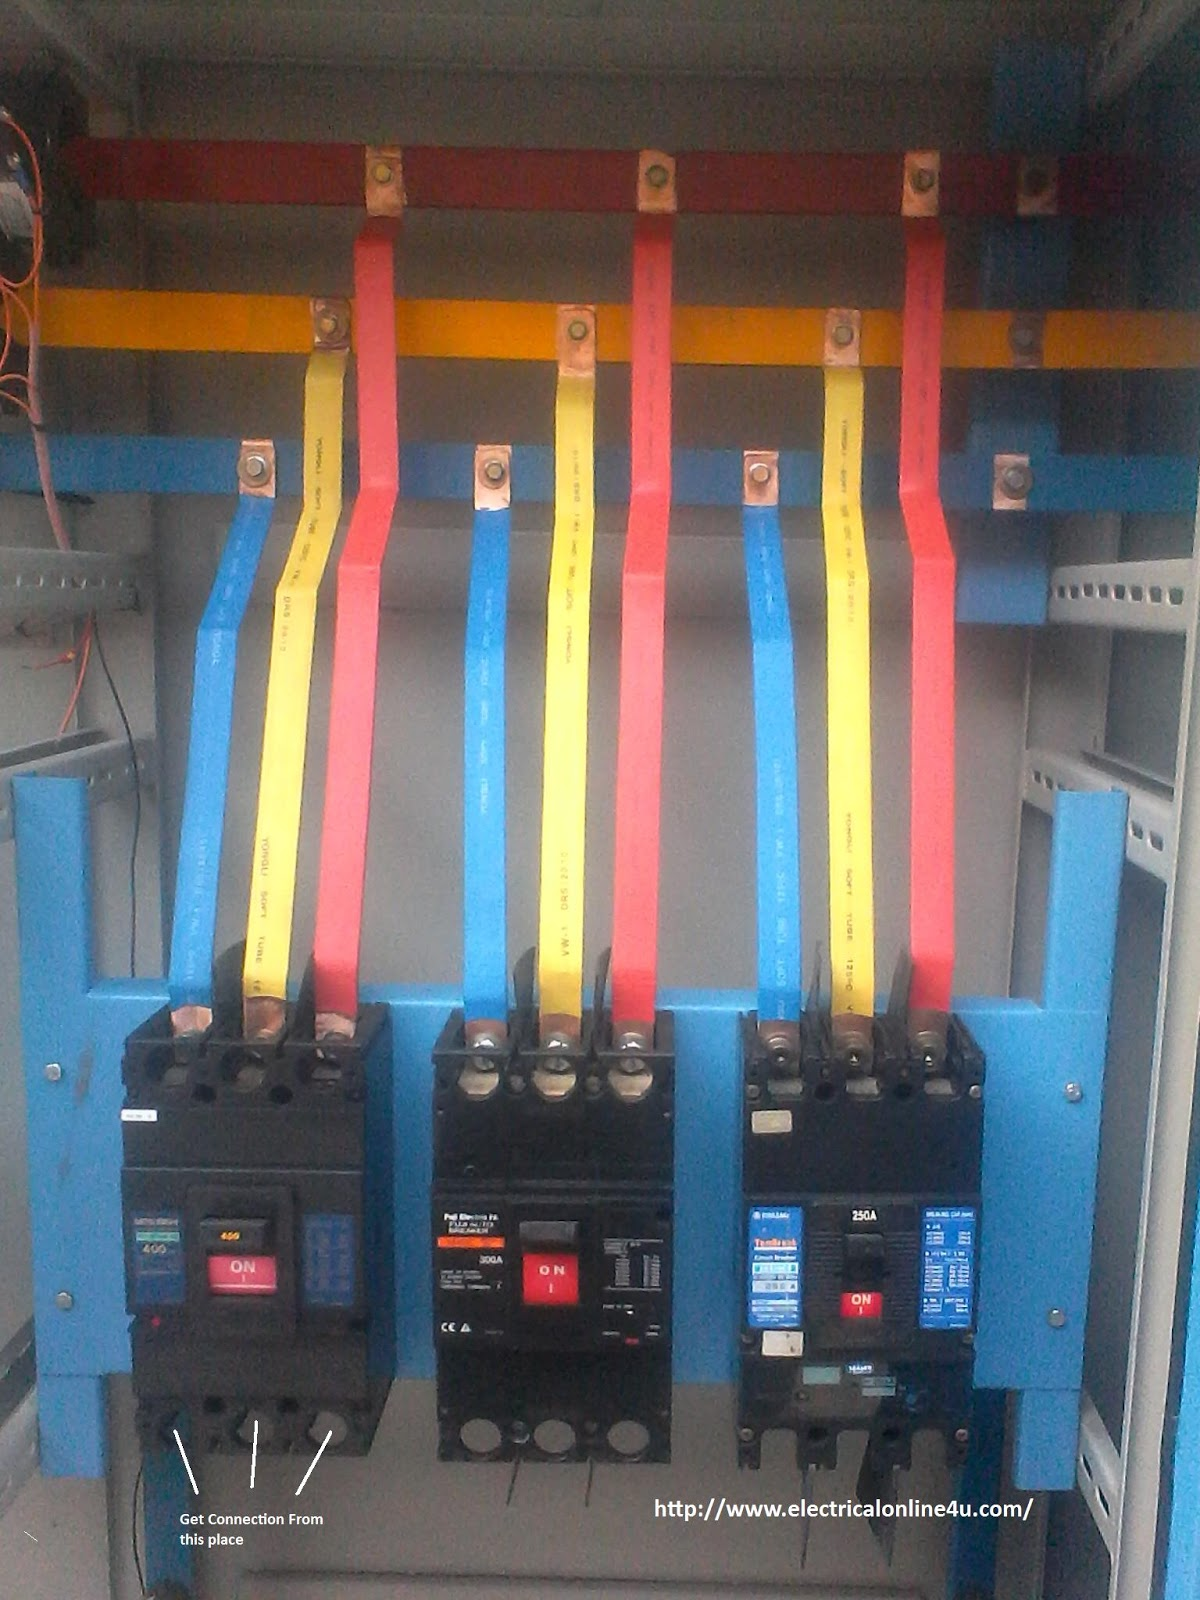 Circuit%2BBreaker%2BInstallation%2BFor%2BThree%2BPhase%2BSupply circuit breaker installation for three phase supply 3 phase 3 phase electrical wiring diagram at gsmx.co